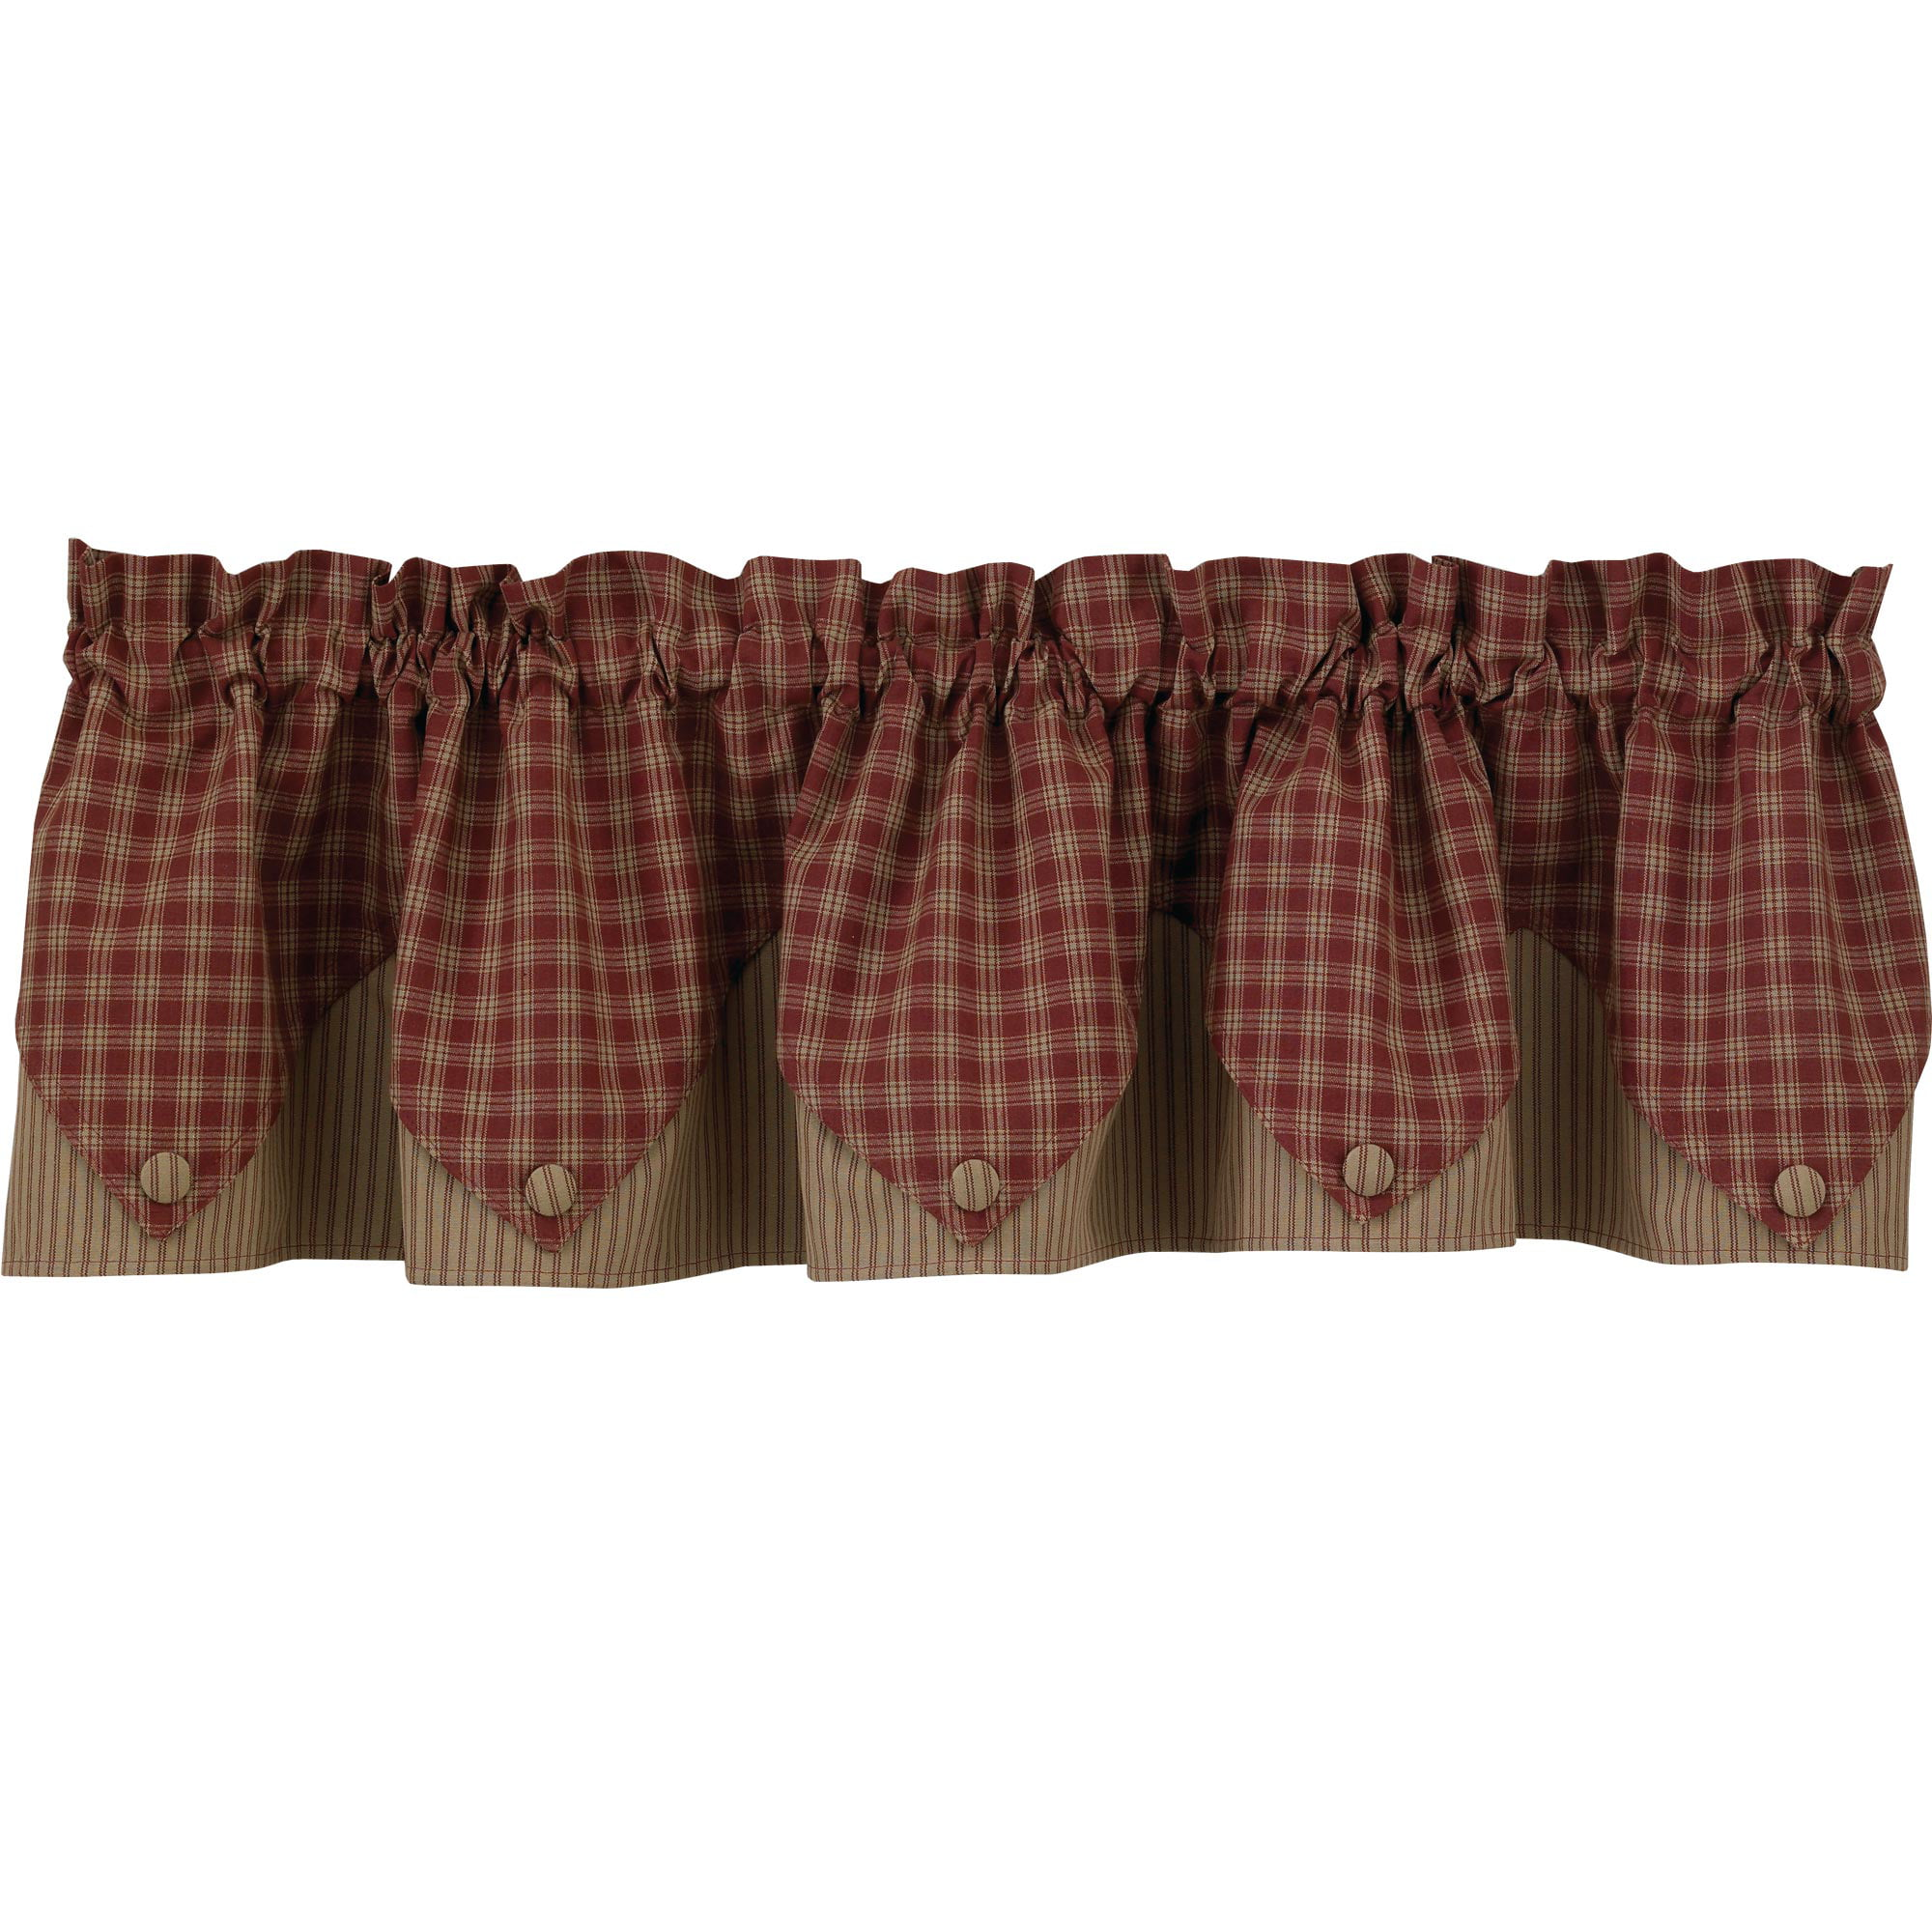 striped curtains lined how to for windows valance country window decorate room living bay valances style french kitchen elegant